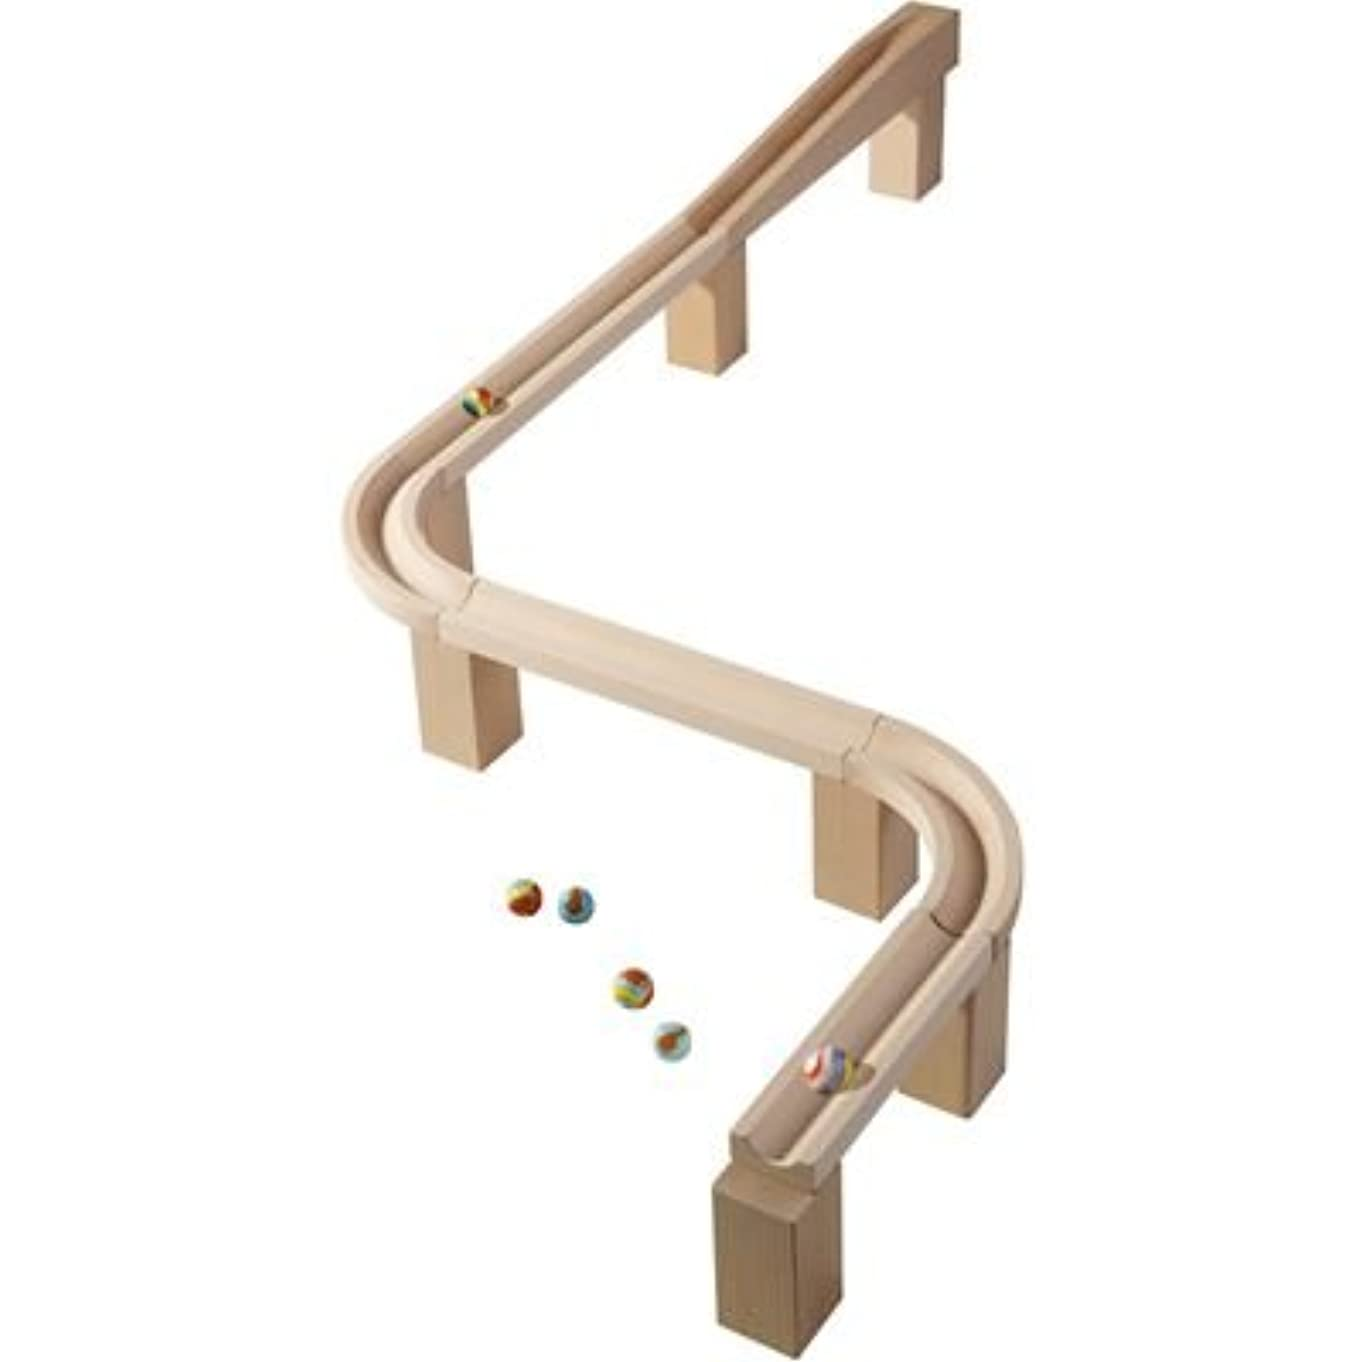 HABA Horizontal Track - Marble Ball track Accessory (Made in Germany) x08258112